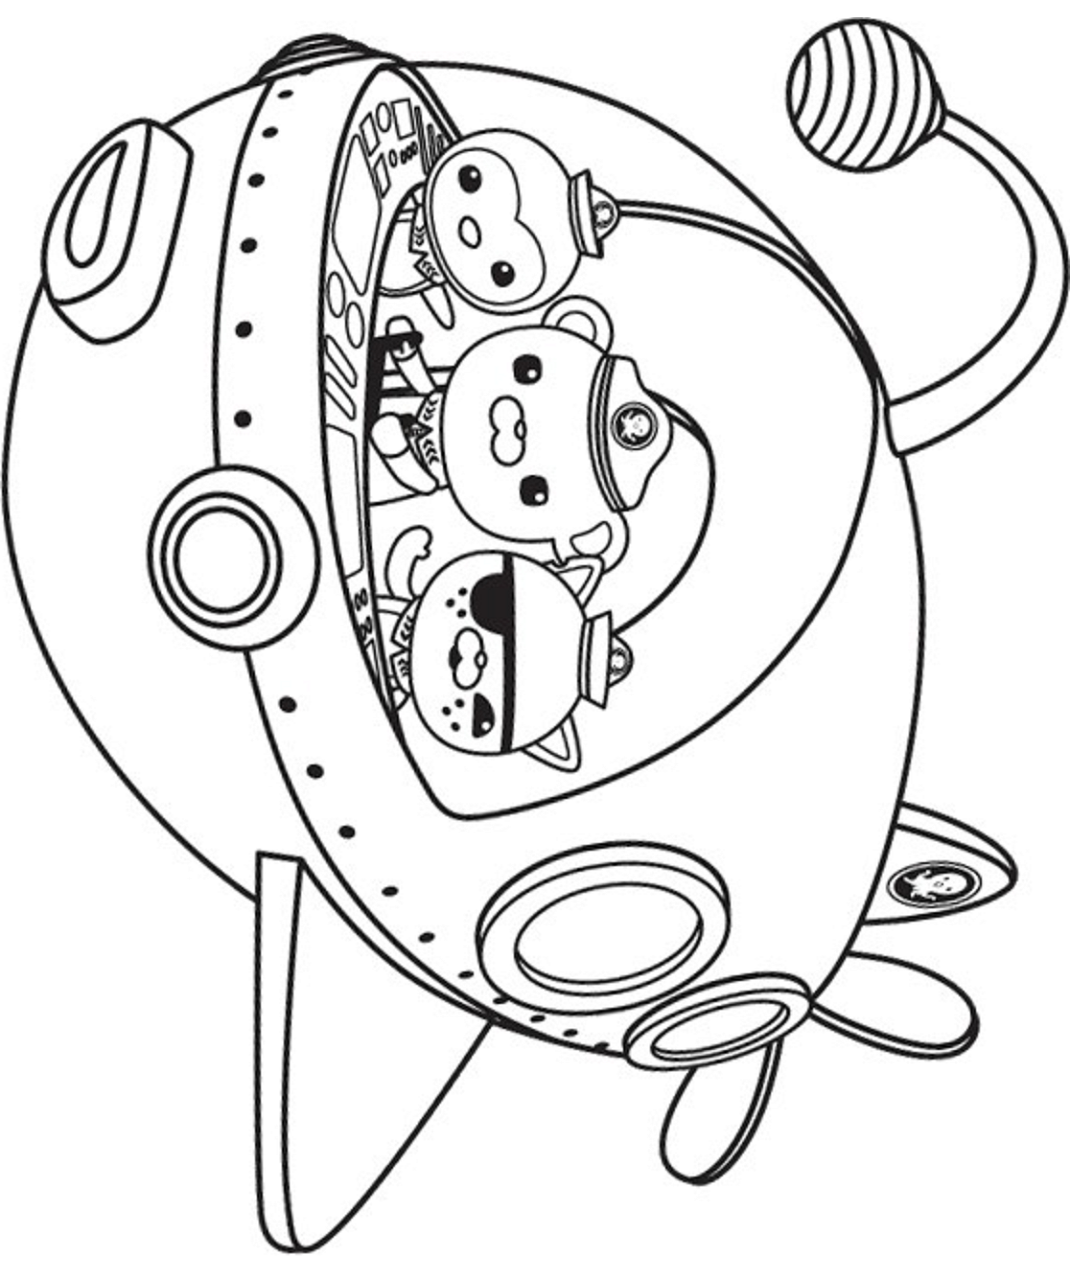 Peso Captain Kwazii In Octonauts Ship Page Coloring Pages Free Printable Coloring Printable Coloring Pages